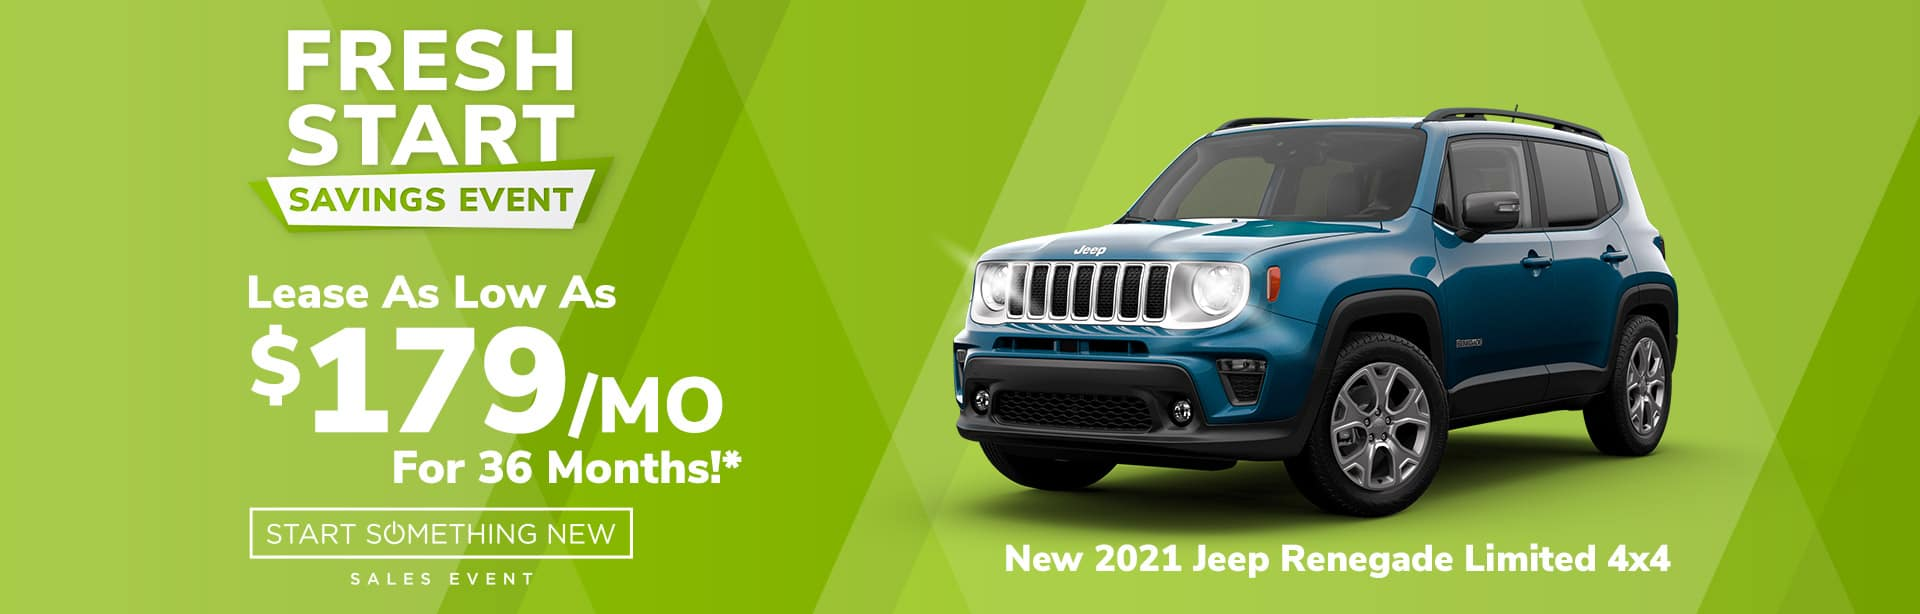 Lease a New Jeep Renegade for $179 a month near Lebanon, Indiana